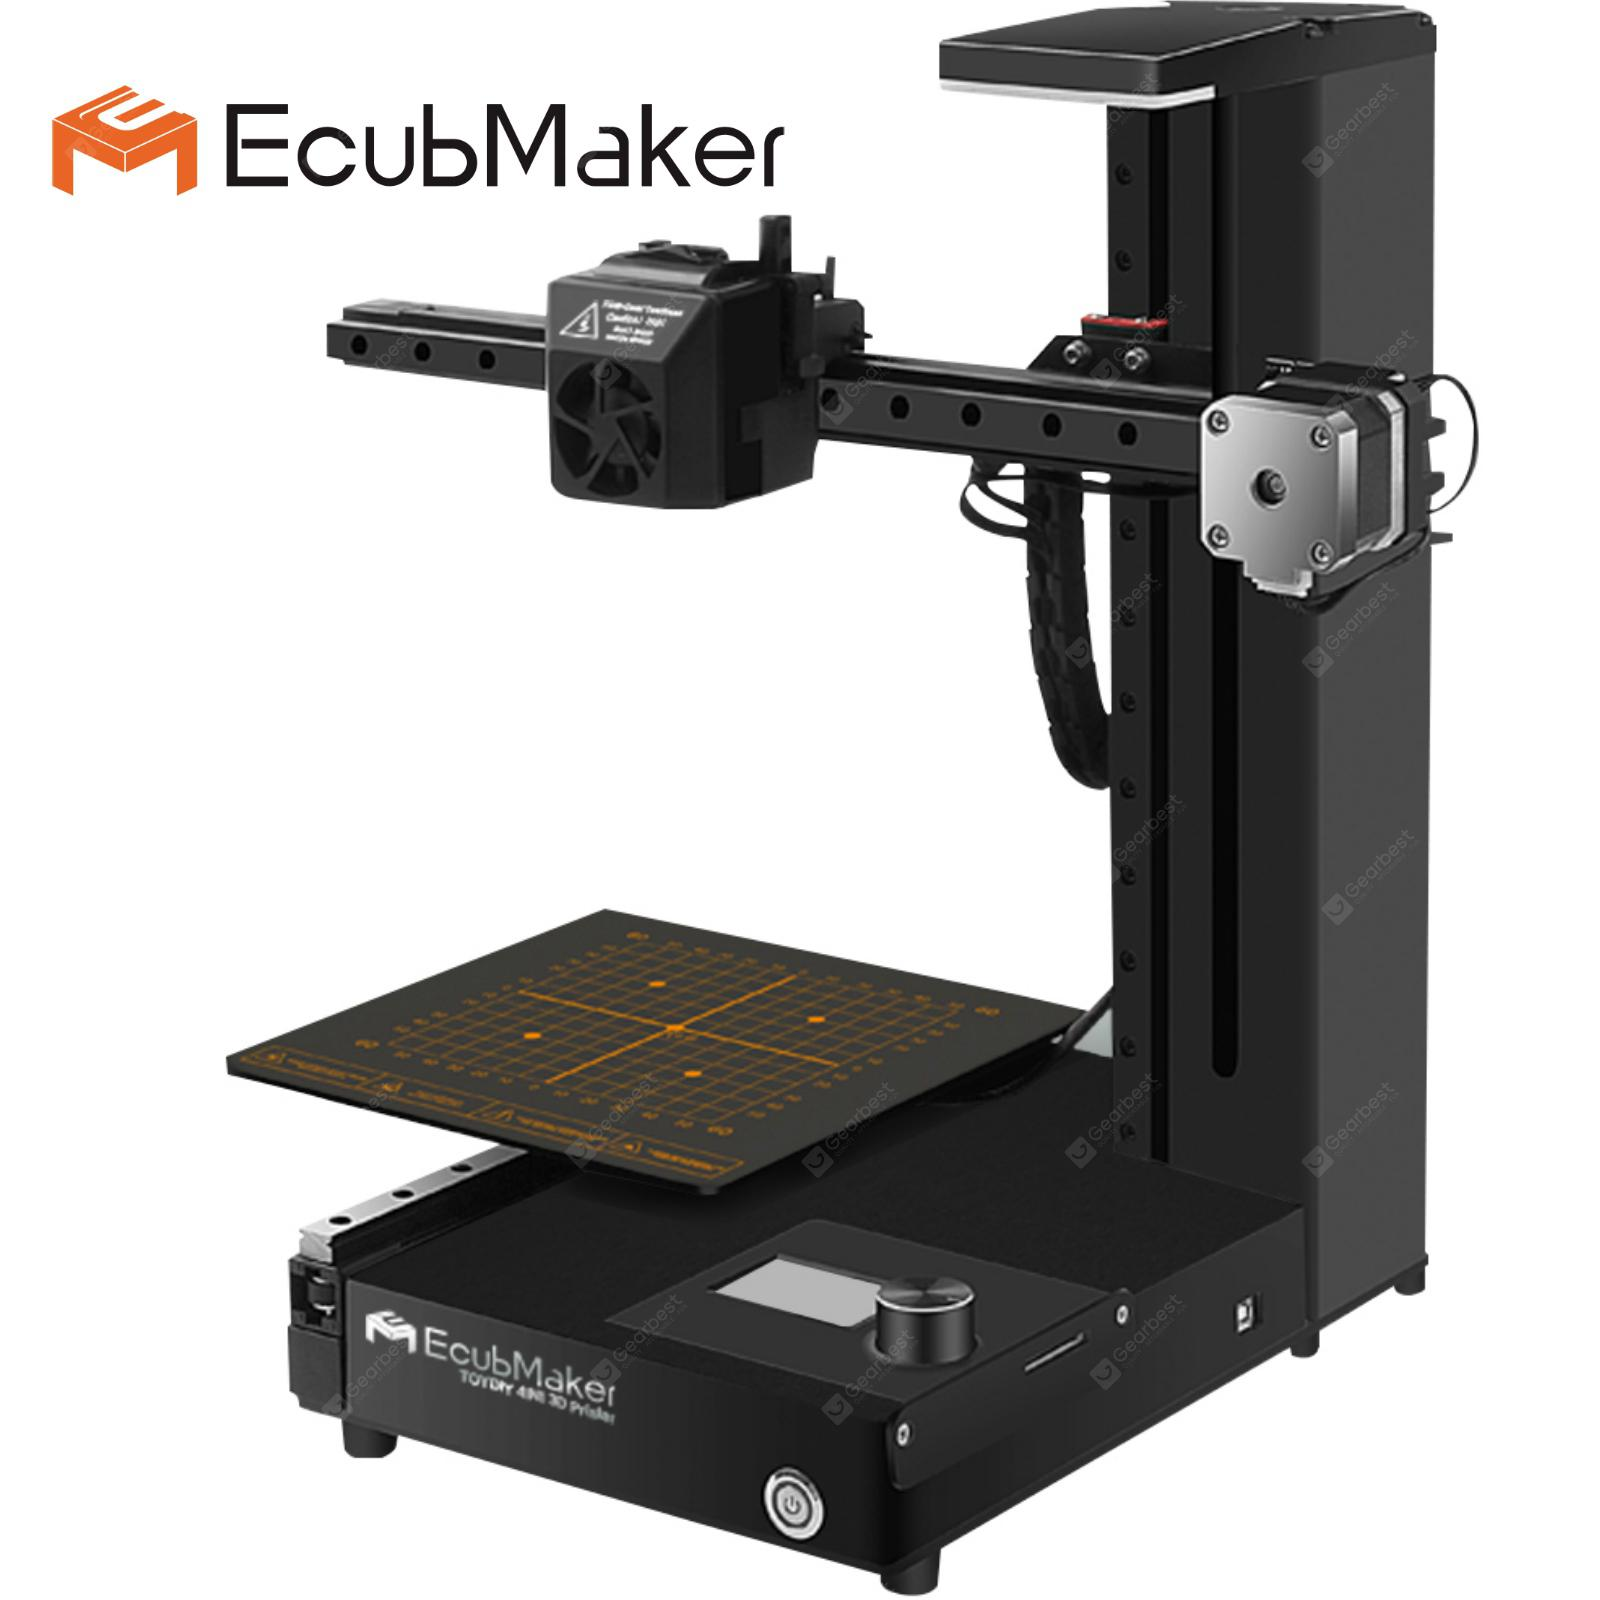 EcubMaker TOYDIY 4in1 3D Printer FDM Laser CNC Dual-FDM with Auto Leveling Heated Build Plate PLA